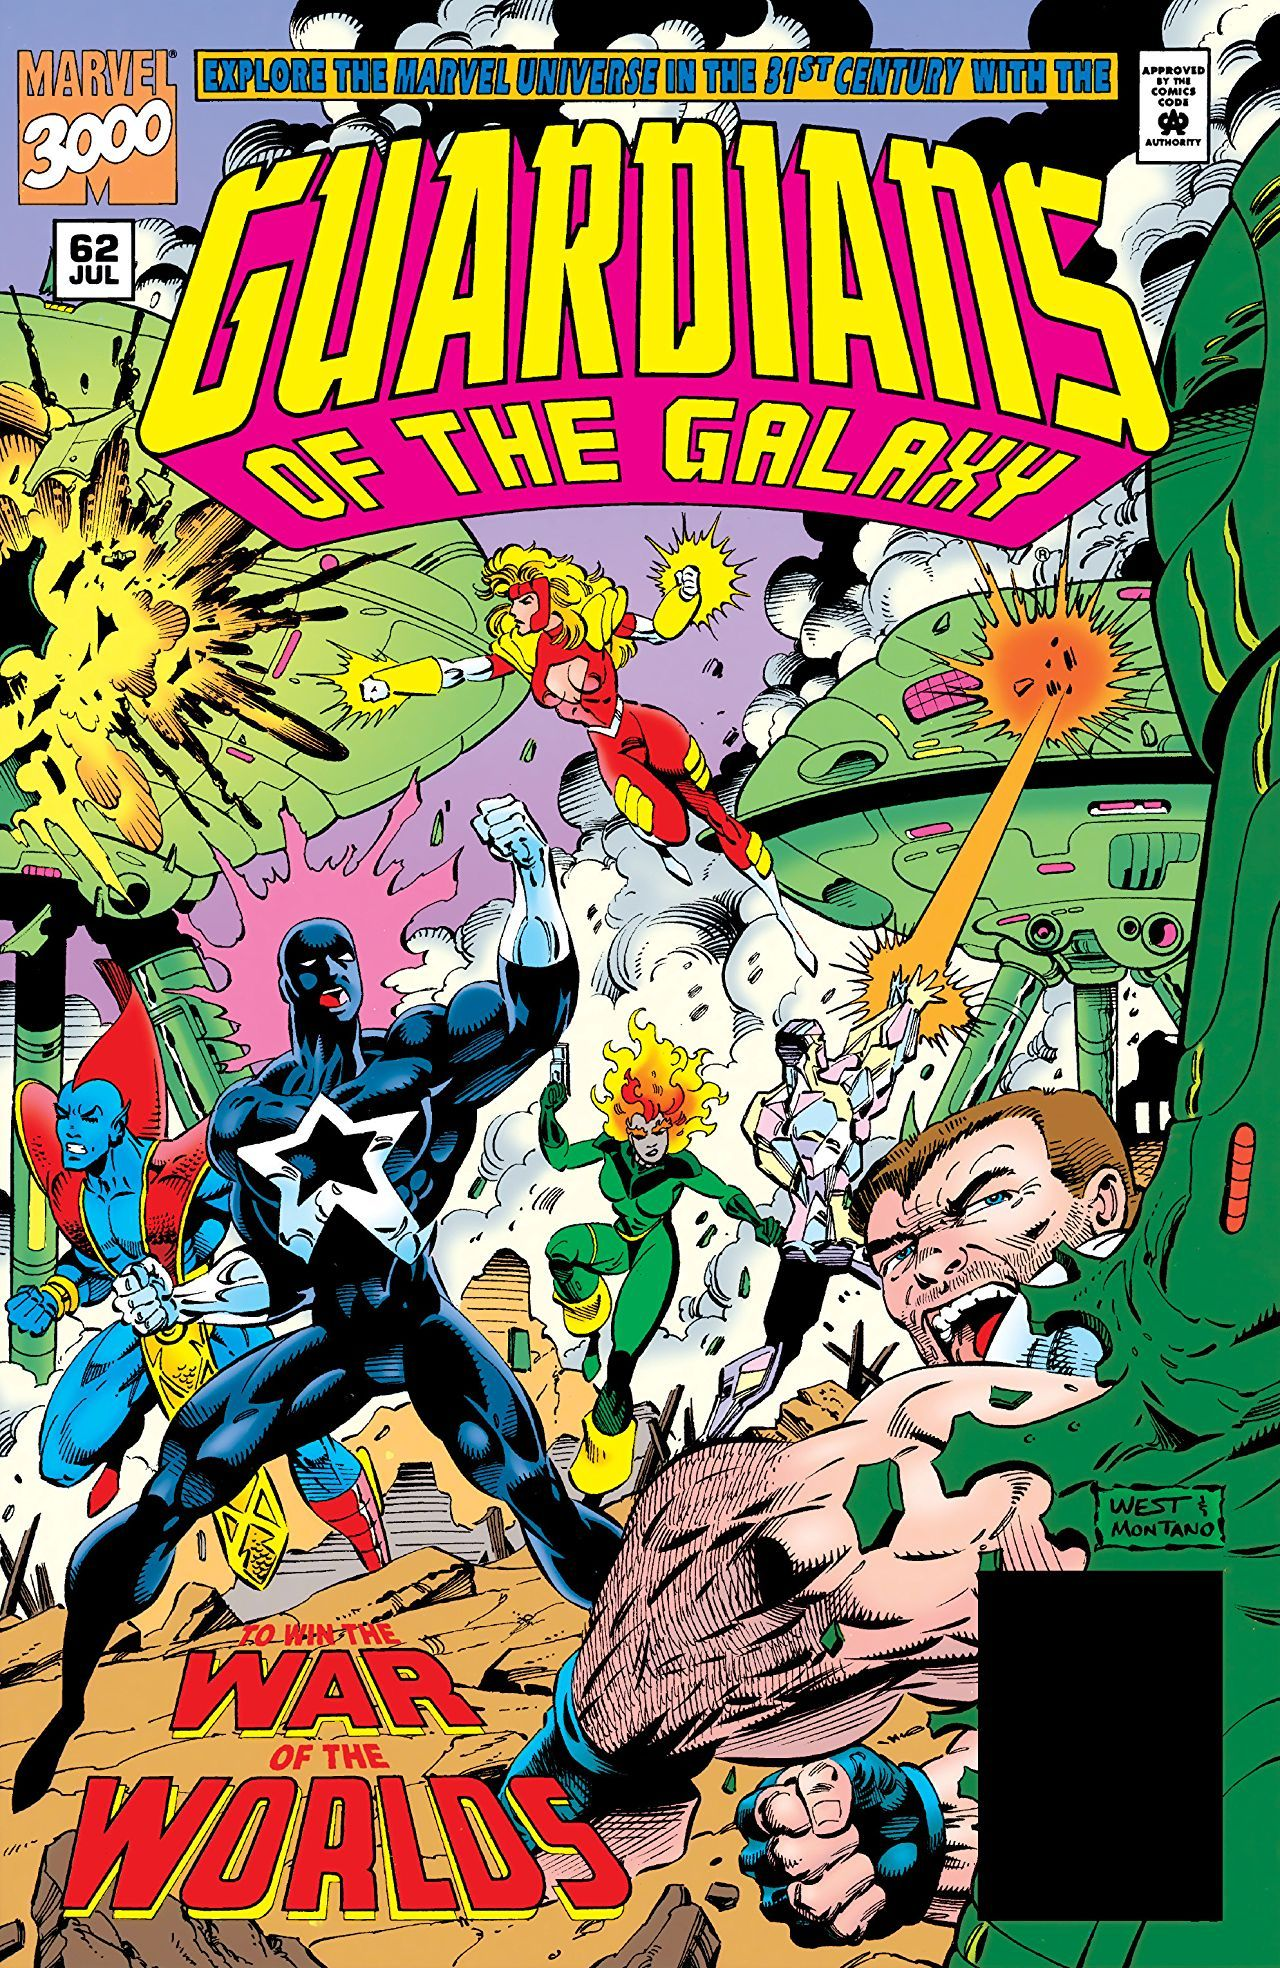 Guardians Of The Galaxy 62 Endgame July 1995 Guardians Of The Galaxy Marvel Comic Books Marvel Comics